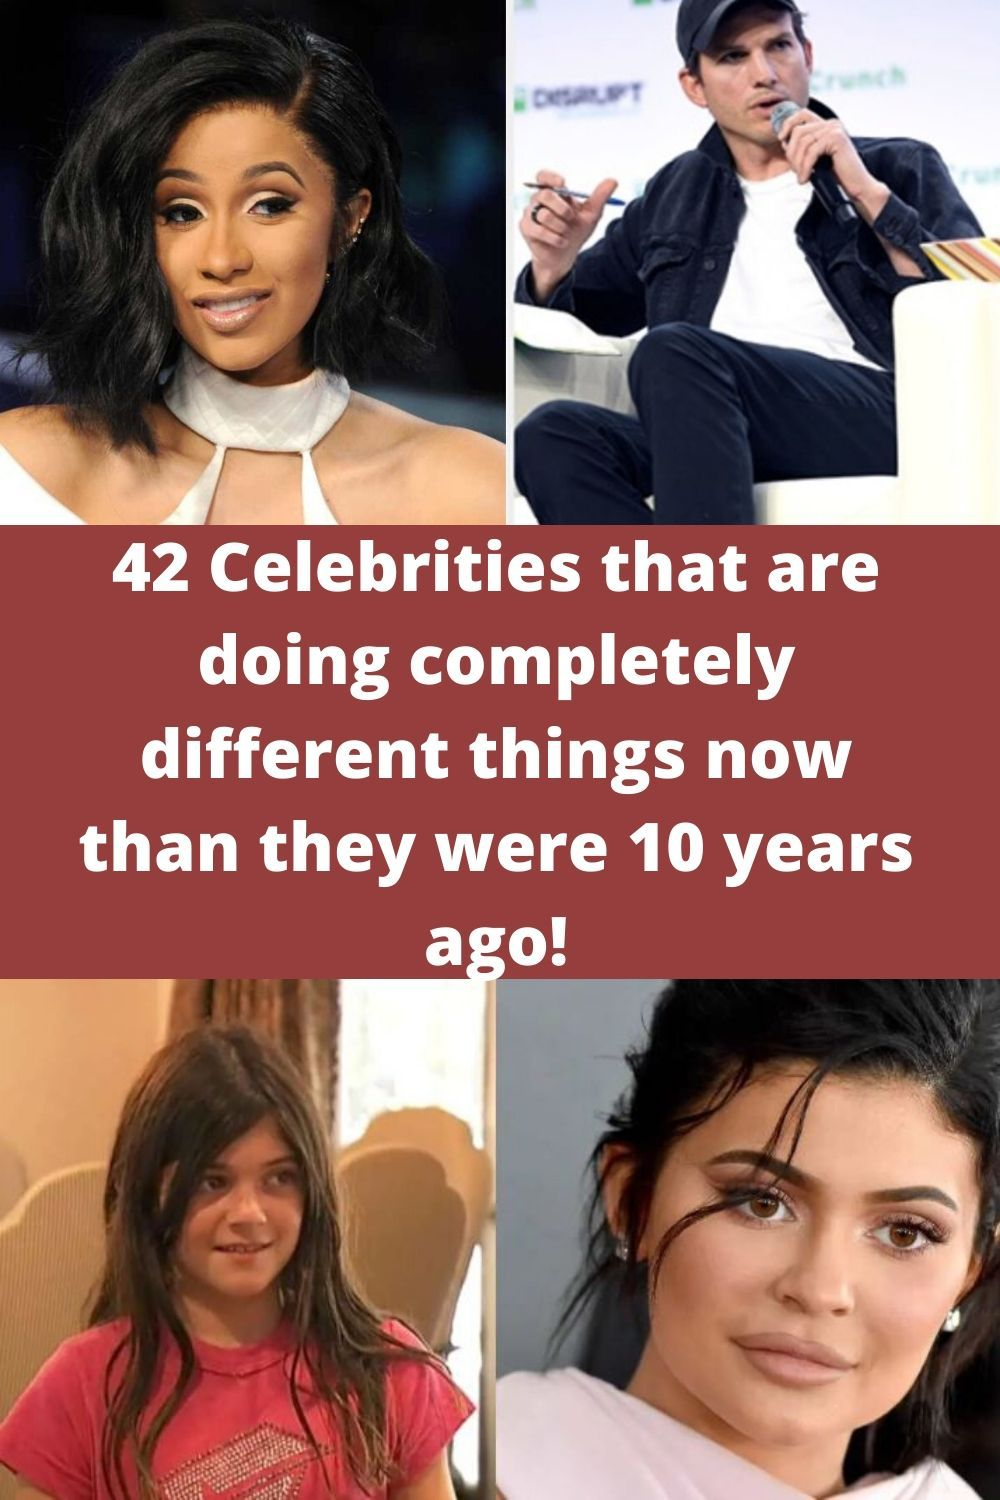 42 Celebrities that are doing completely different things now than they were 10 years ago